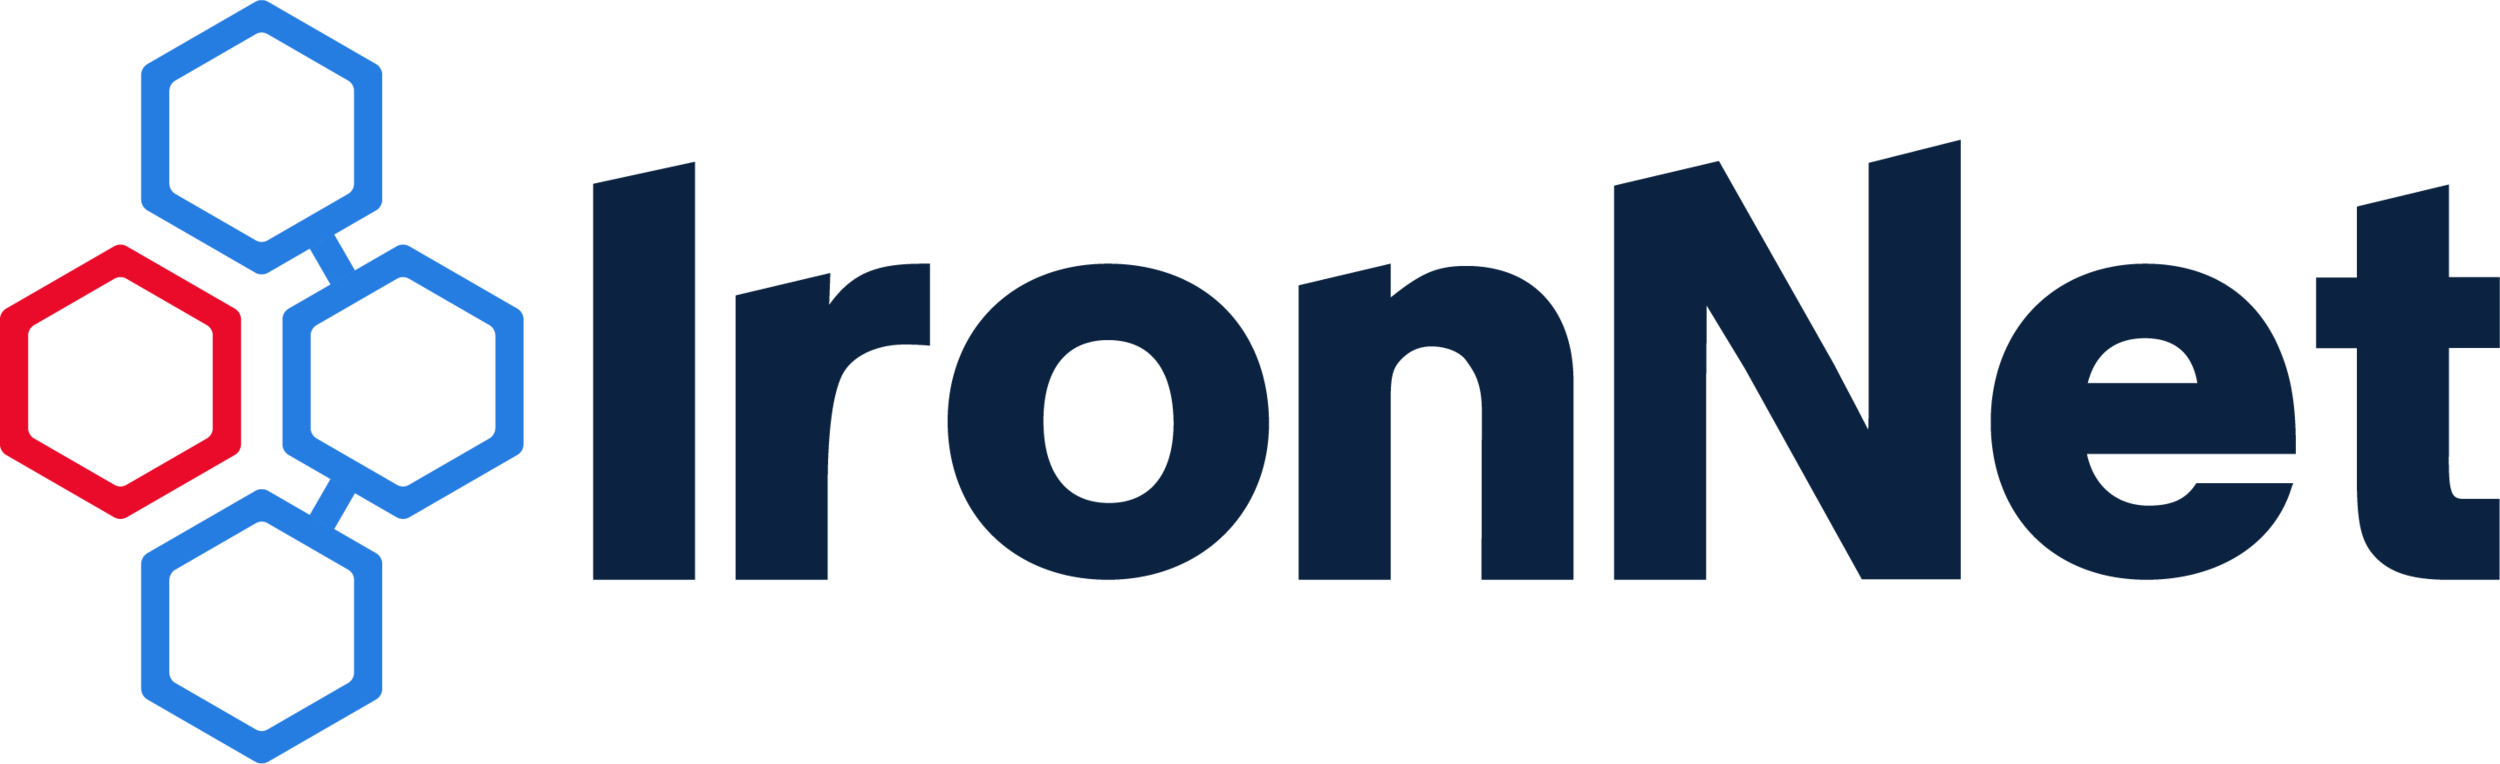 IronNet Primary Logo_web.png